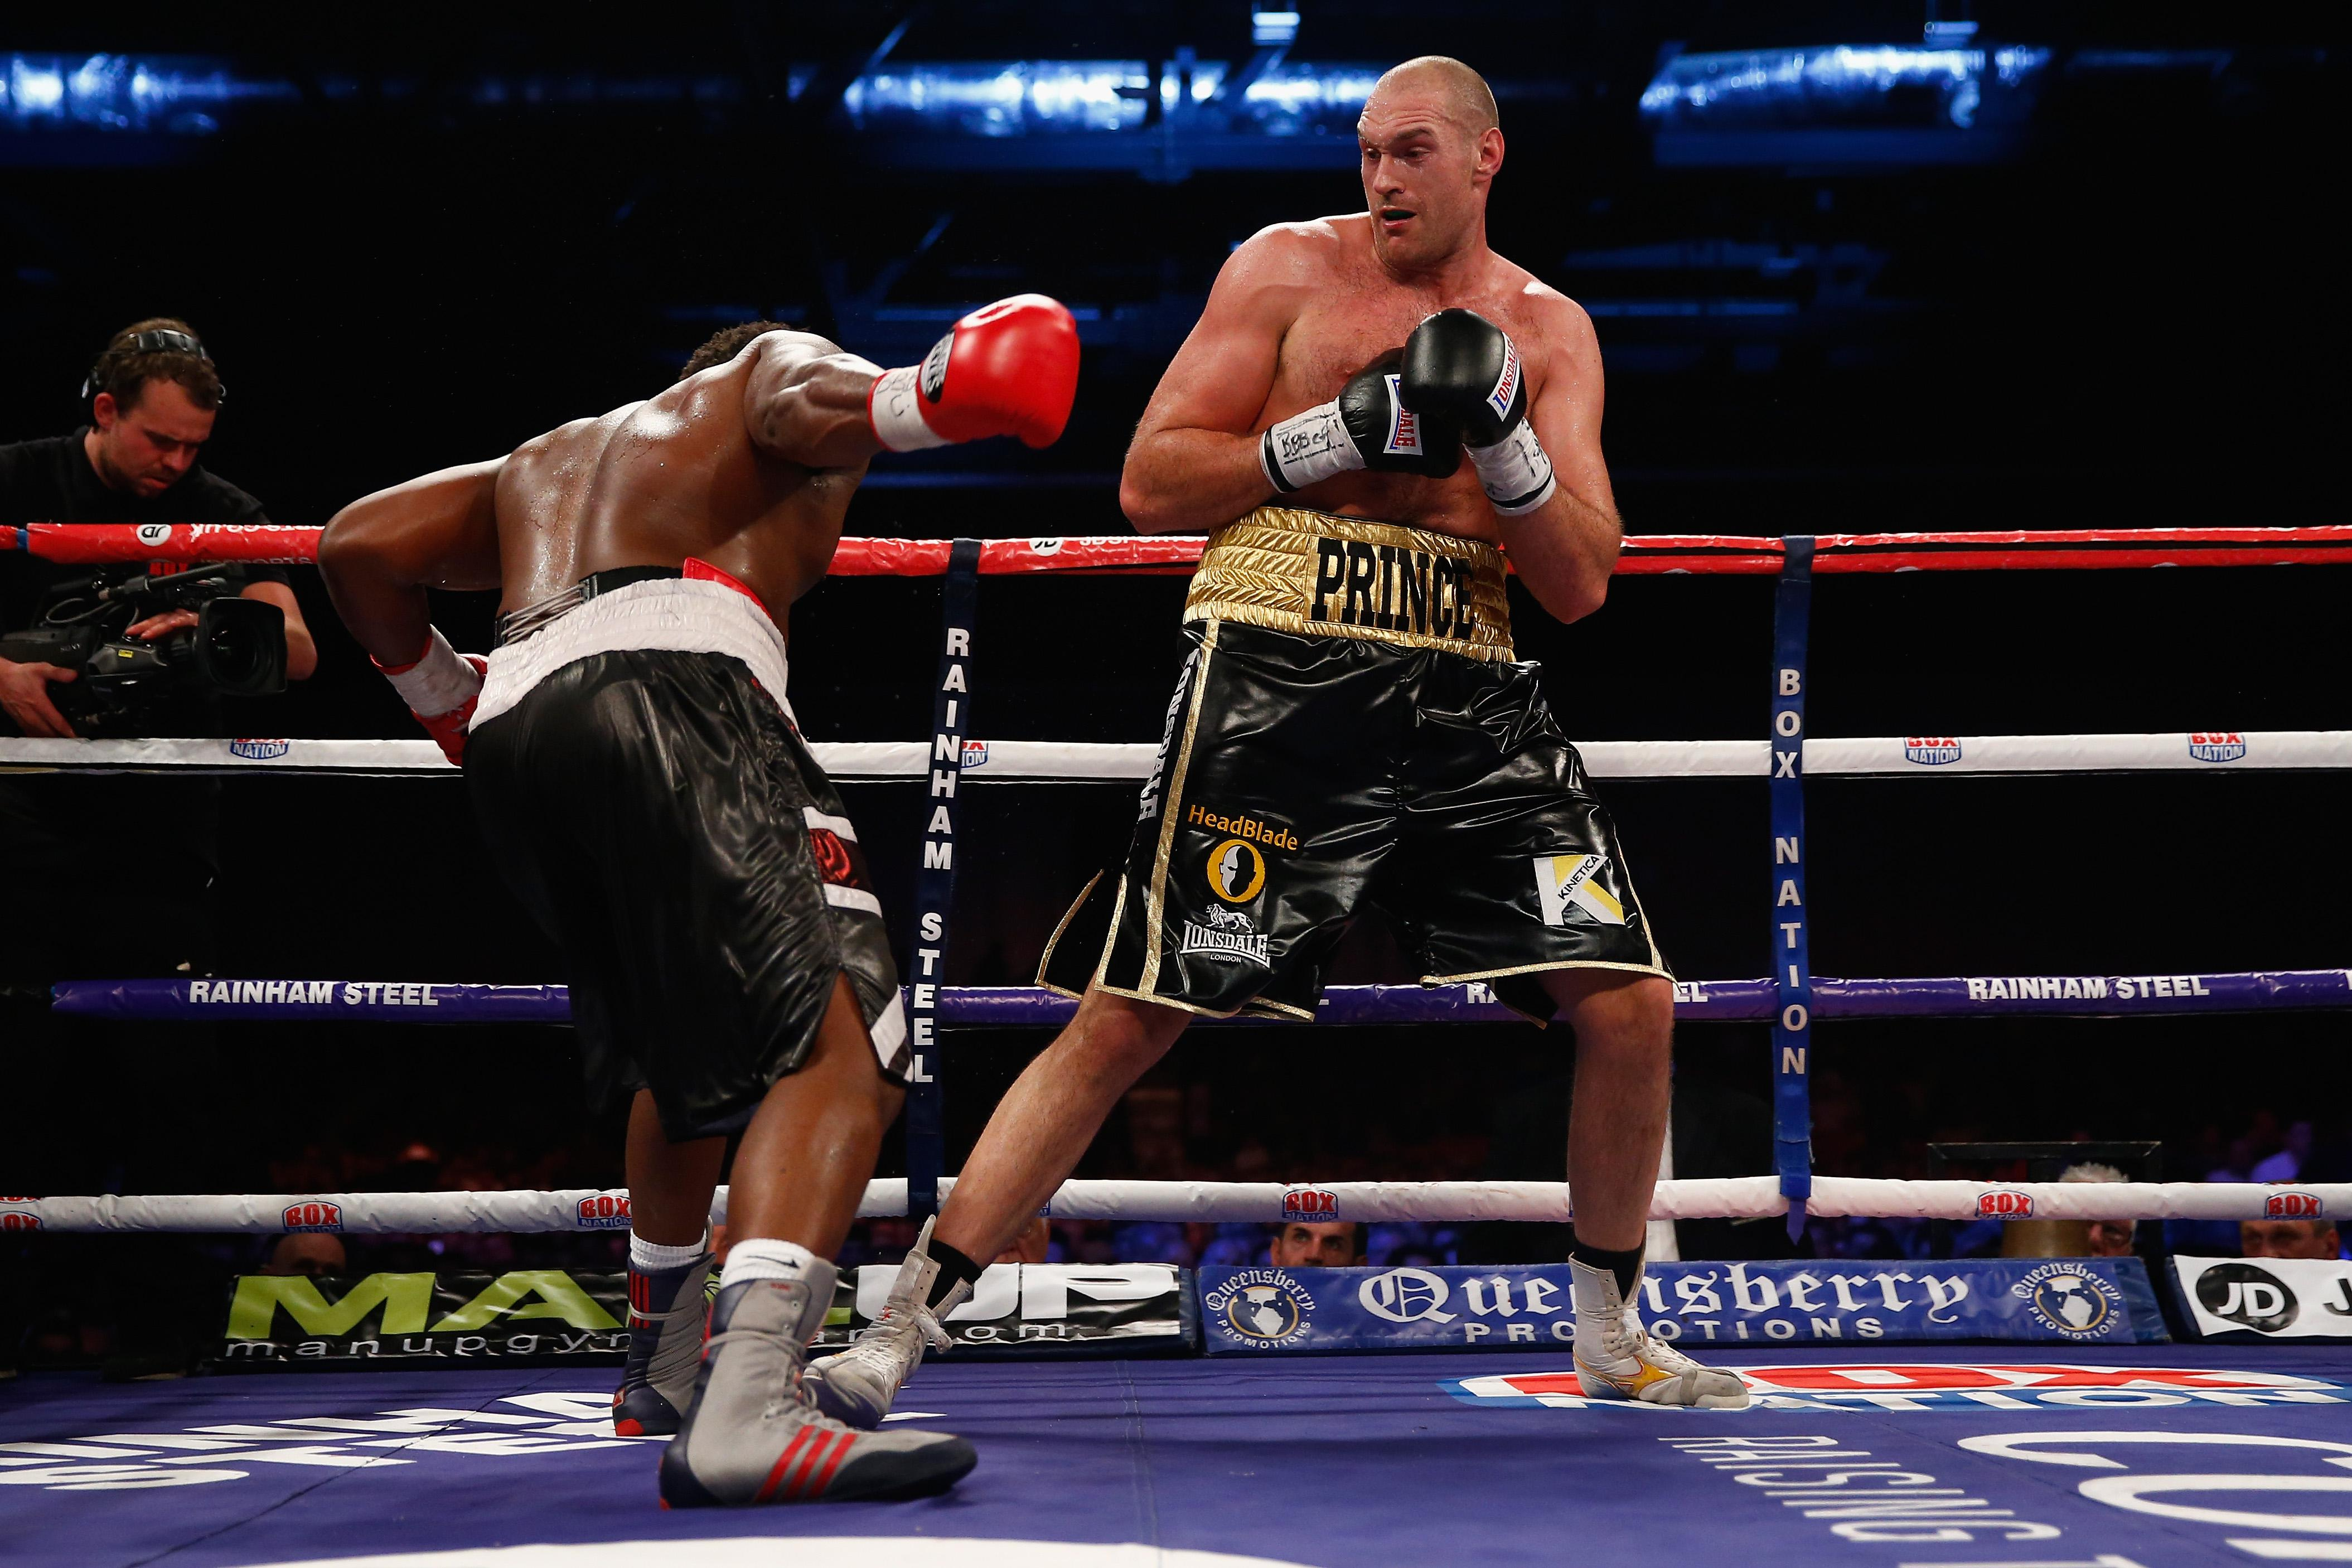 The former world champion is unbeaten in 25 fights since turning professional in 2008